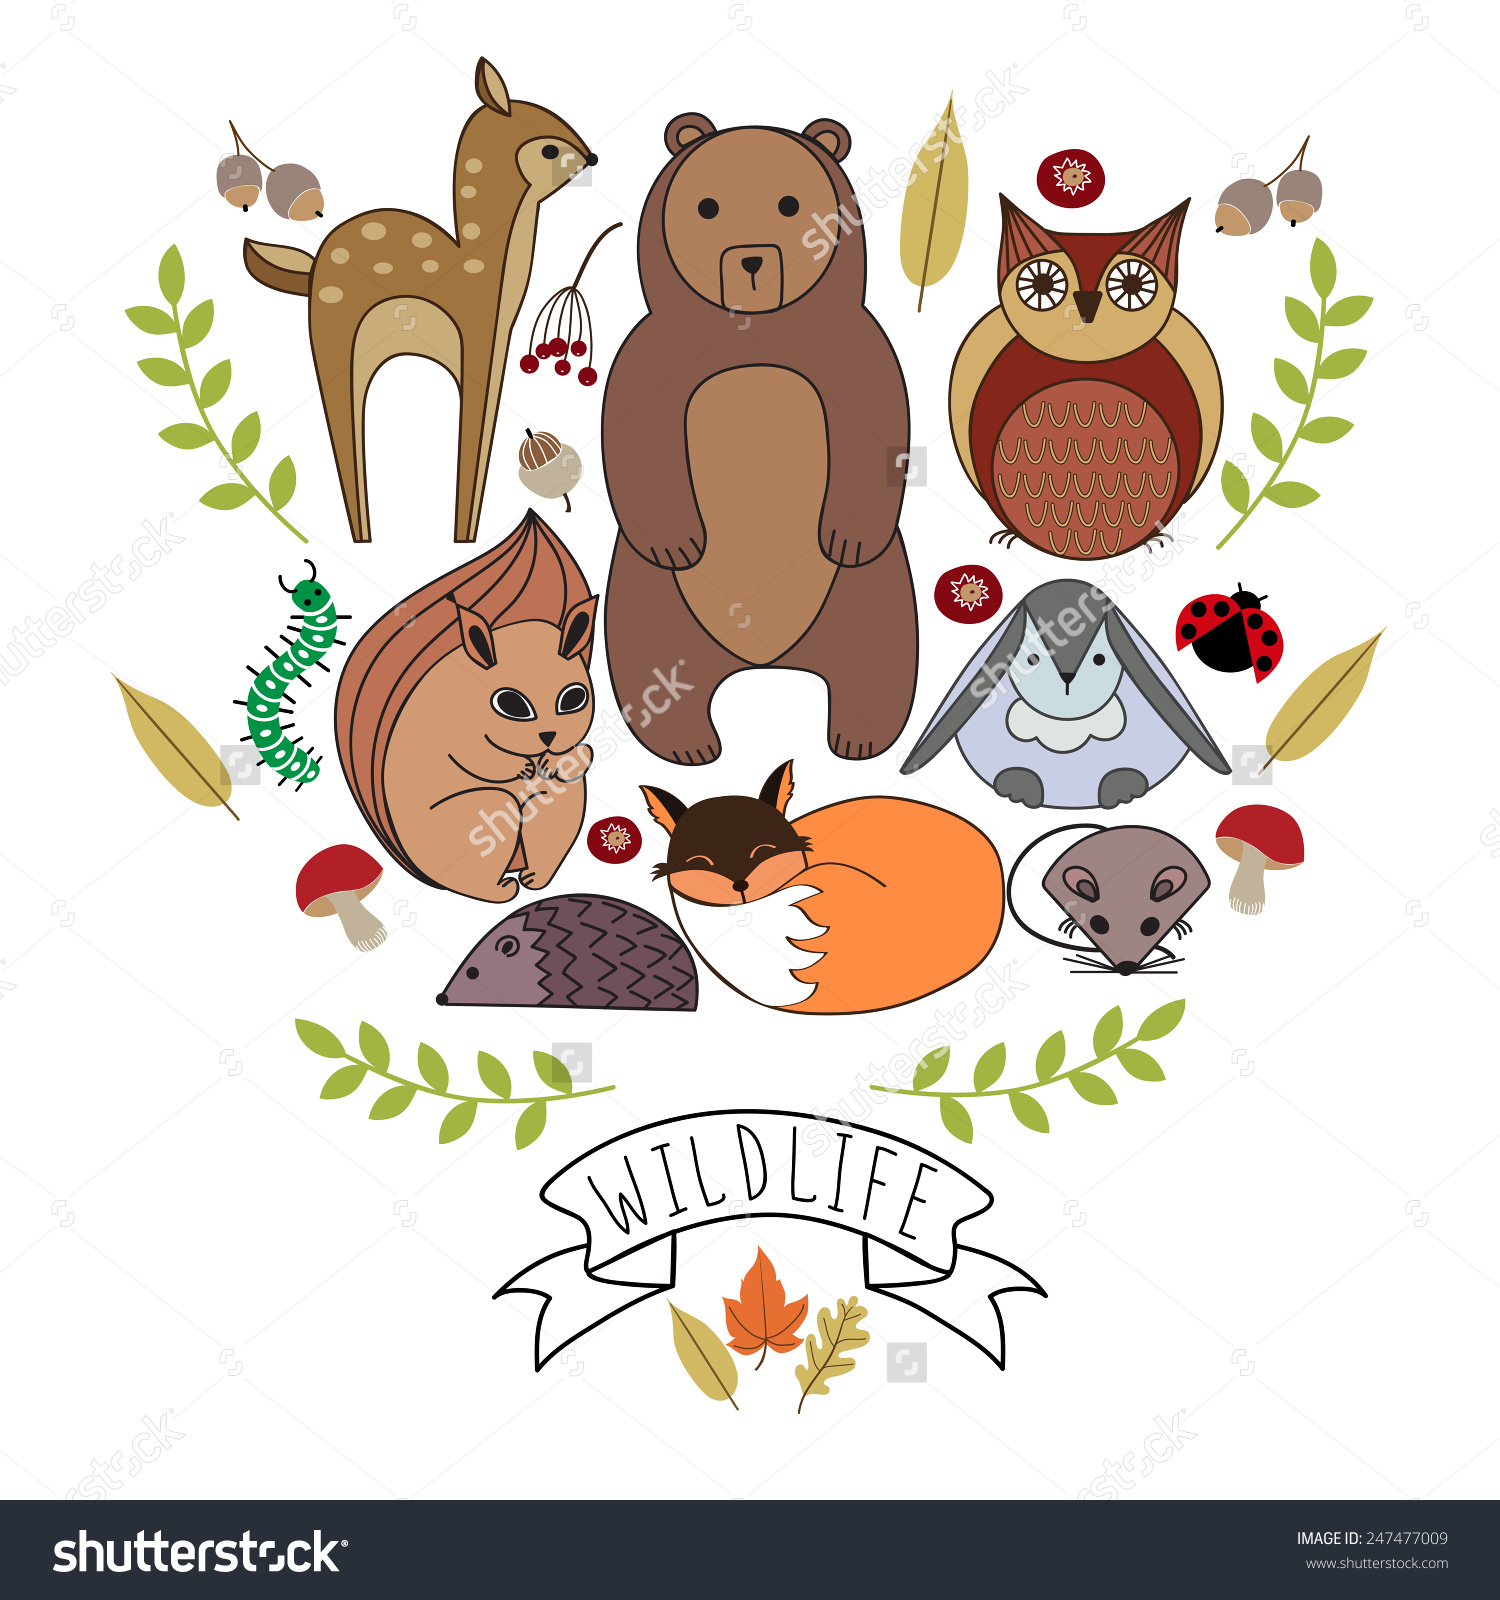 Forest Animals. Wood Life. Forest Dwellers. Cute Little Animals.